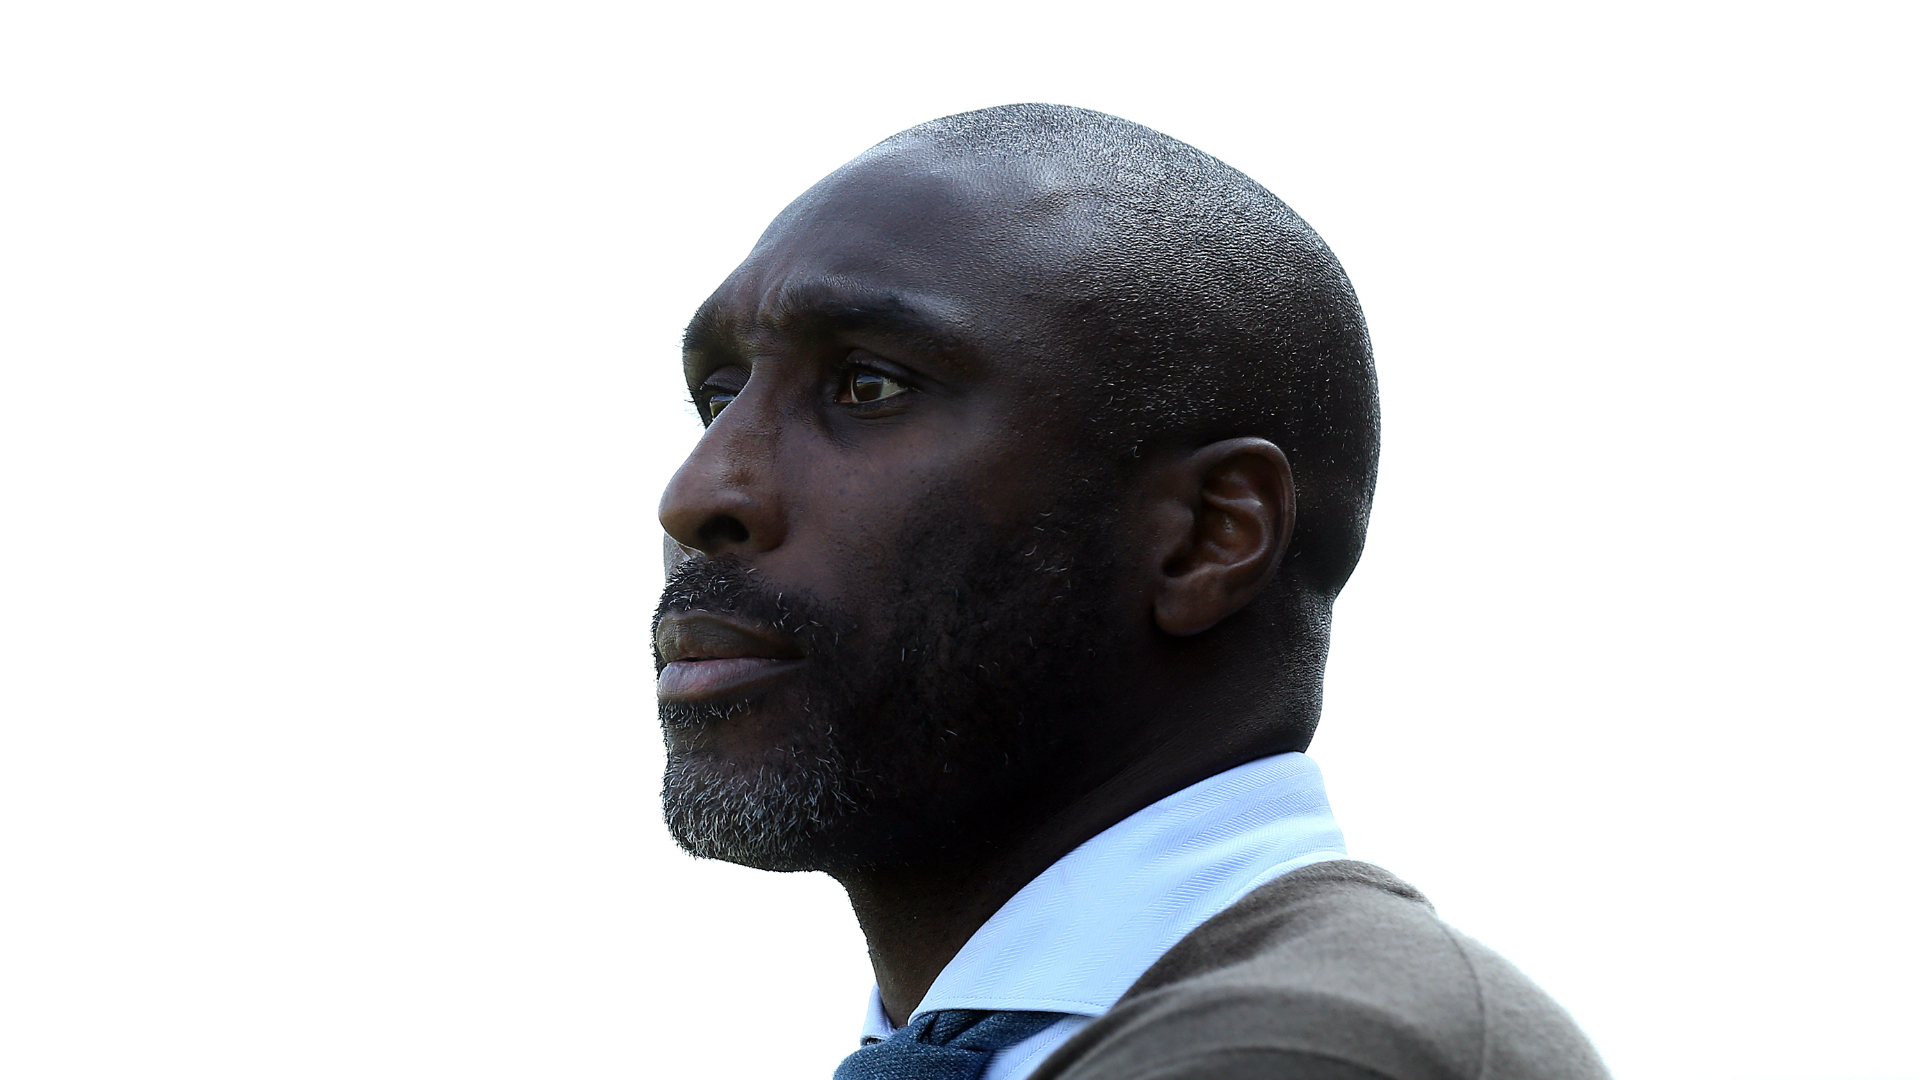 Campbell leaves Macclesfield Town after eight months in charge